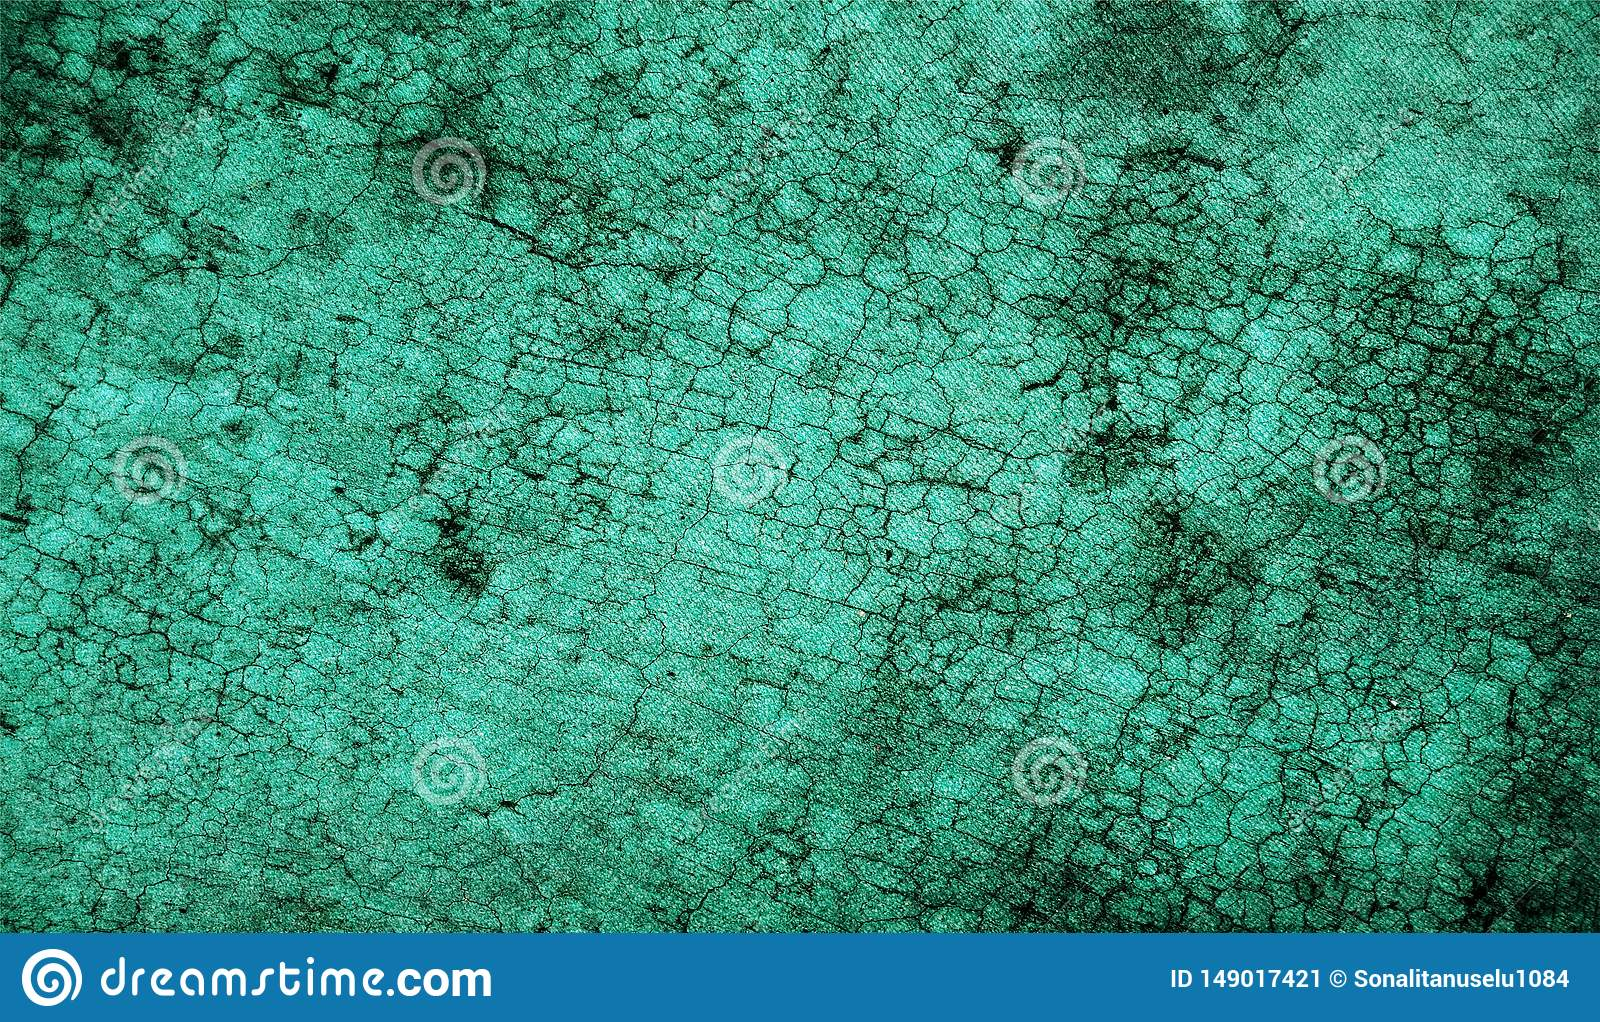 Green and black shaded wall textured background. grunge background texture. background wallpaper.